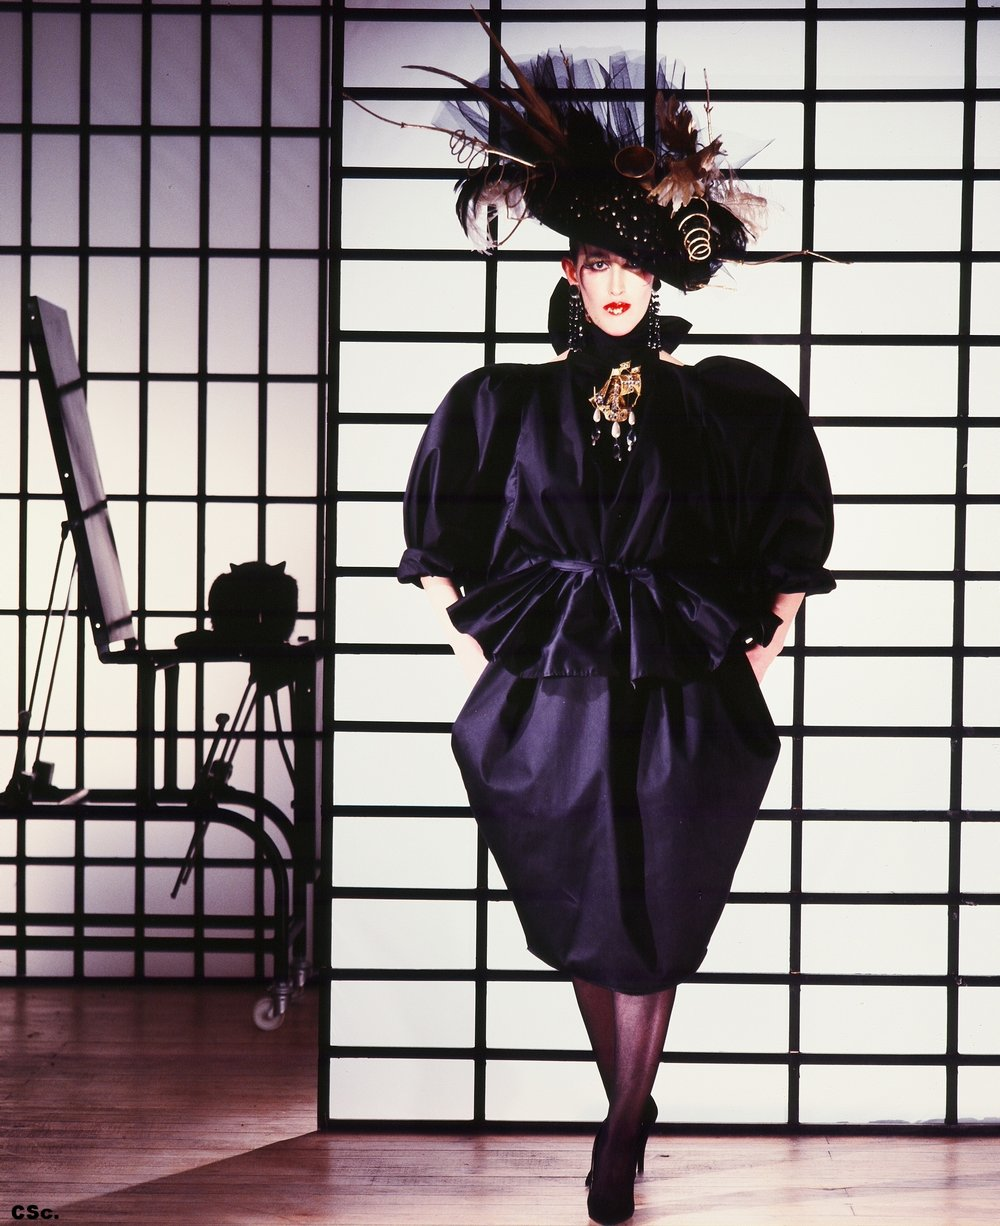 Sarah Hodgson - Kirby Wearing Black Interview Dress, Thames Garbage Hat - Jeweled Gallion from the Calanoli Collection, 1984, photograph by Joe Lyons